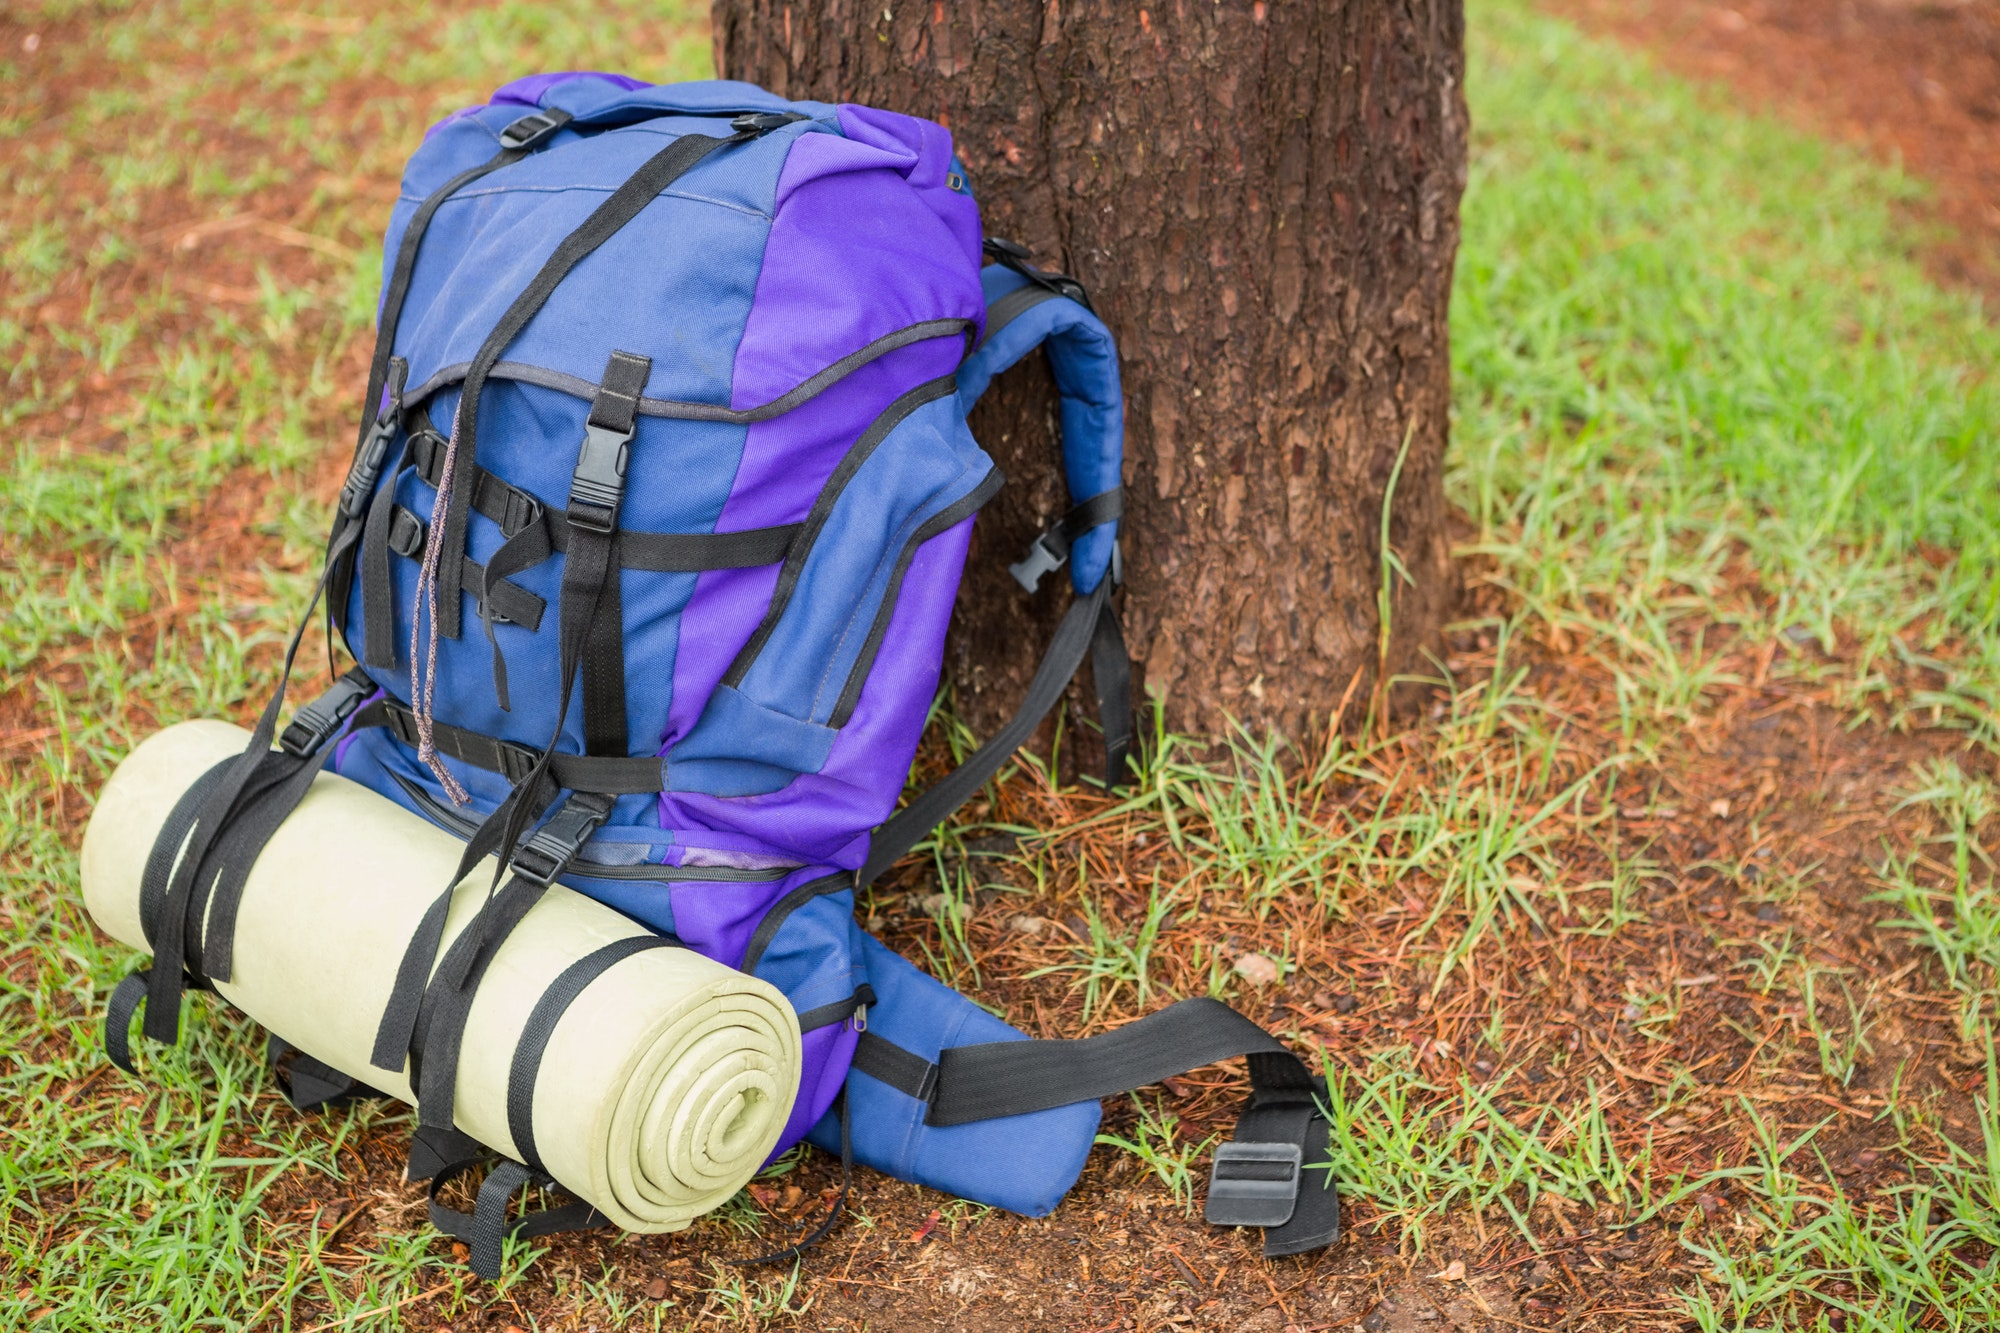 An hiking backpack and hiking pole leaning on a tree